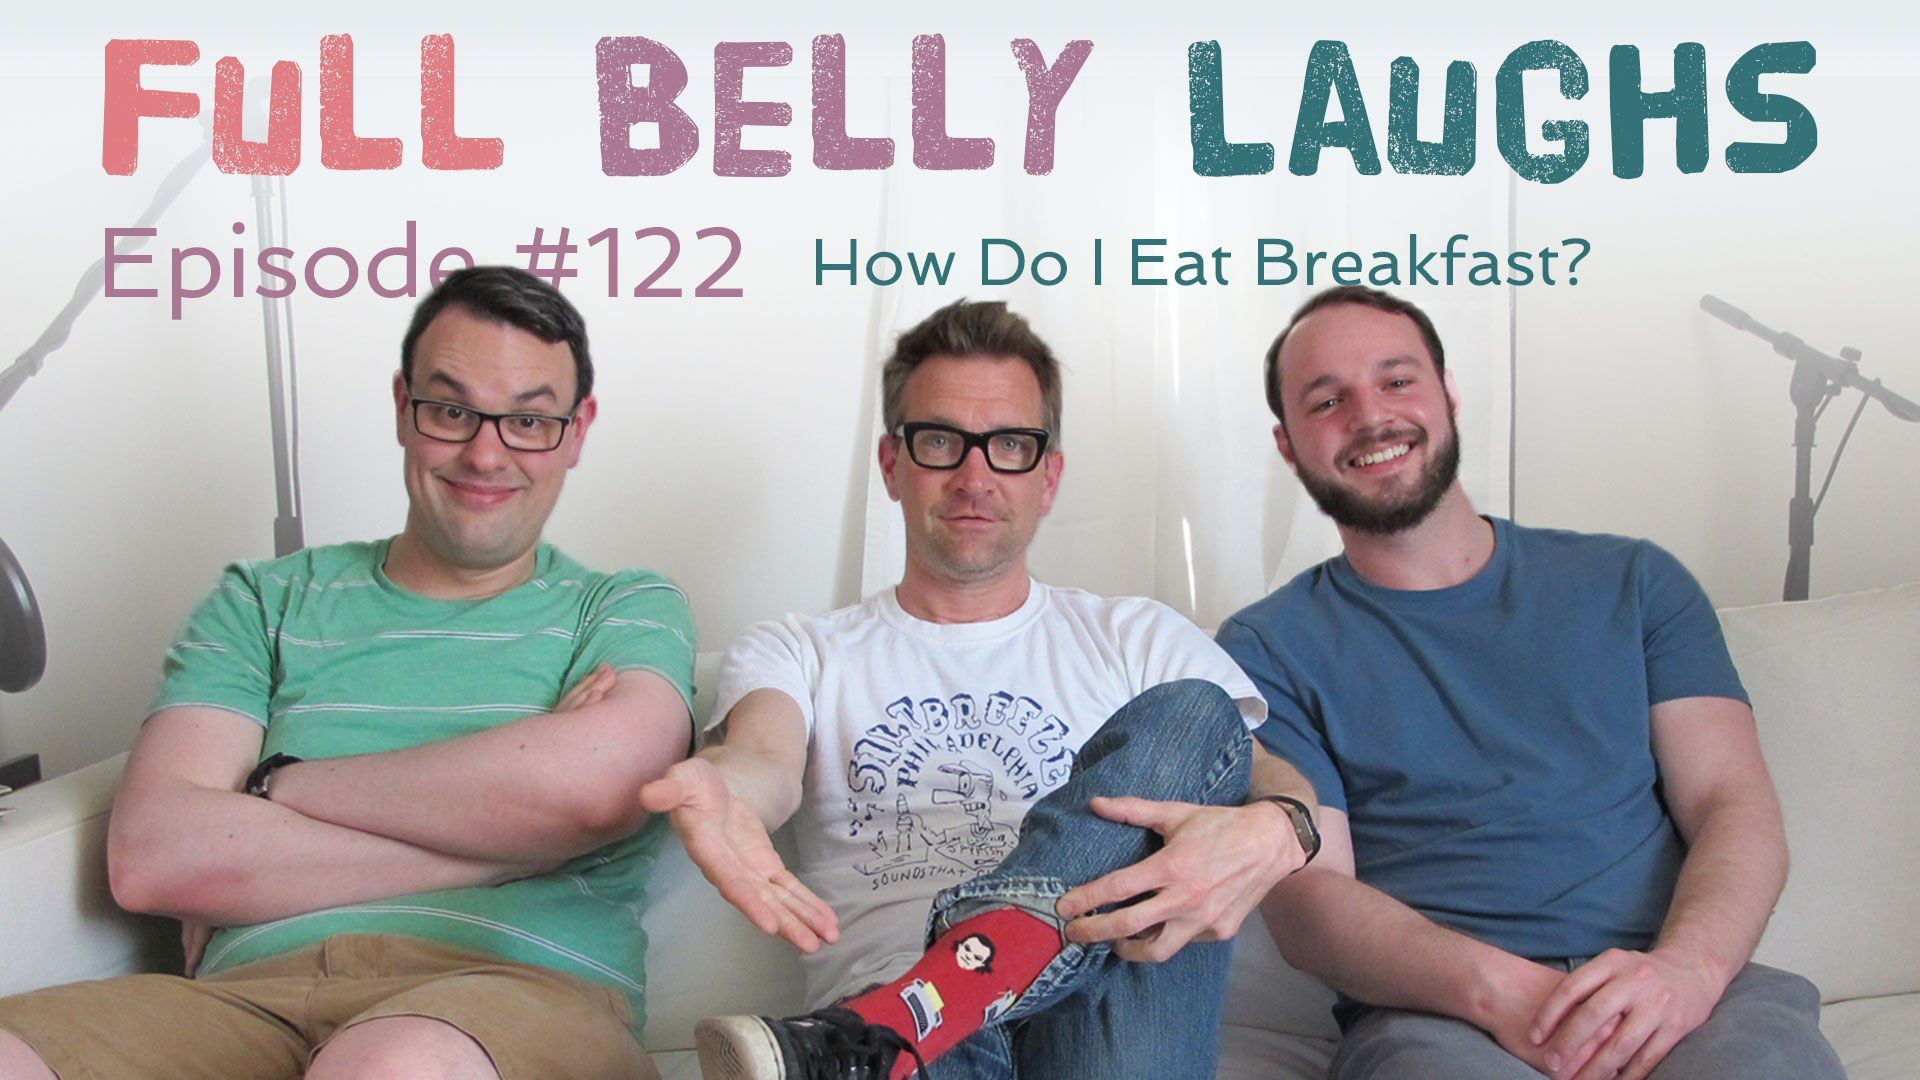 full belly laughs podcast episode 122 how to eat breakfast audio artwork